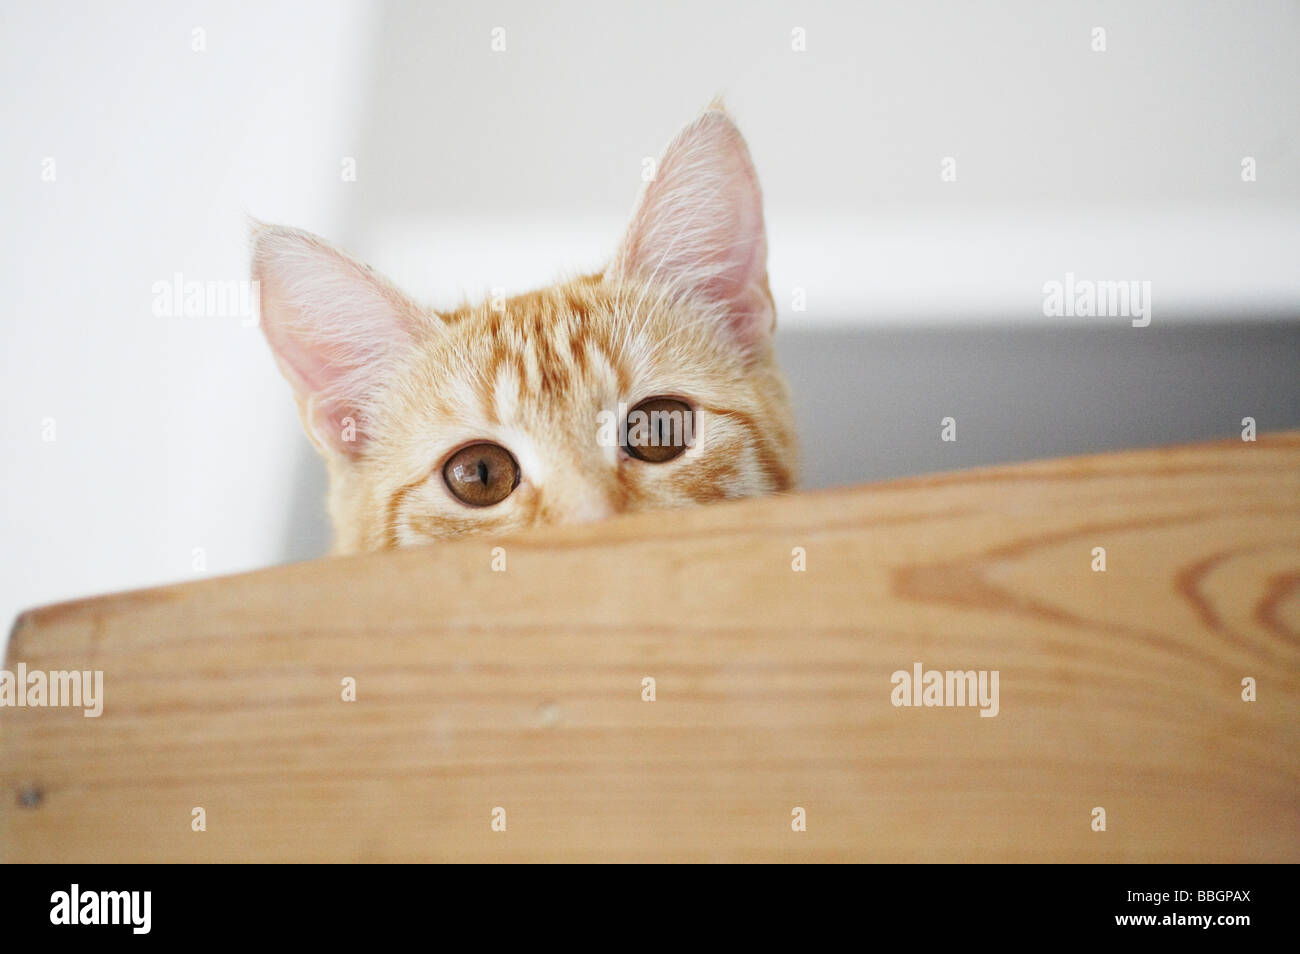 cheeky naughty cat kitten hiding playing hide and seek  ginger pet tabby - Stock Image